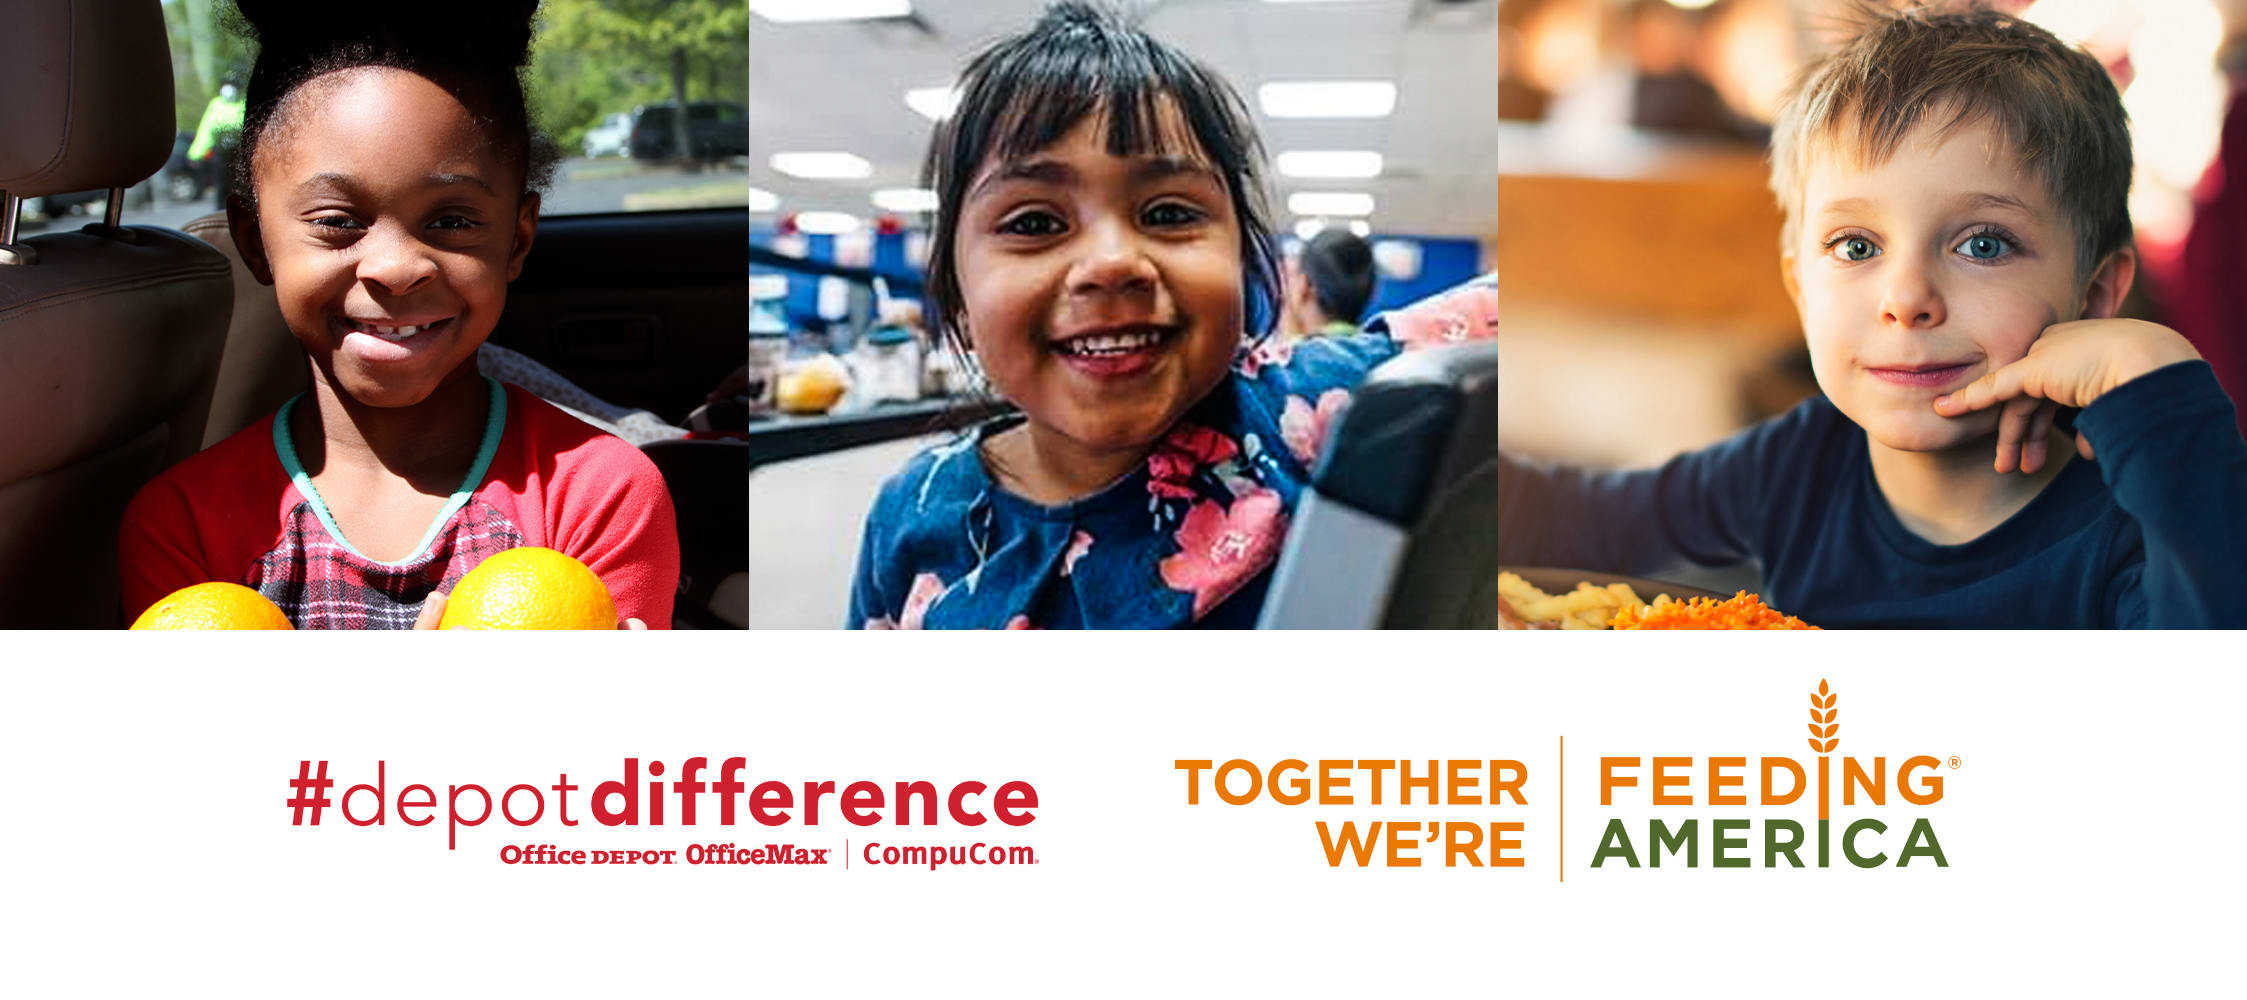 #depotdifference | Together We're Feeding America